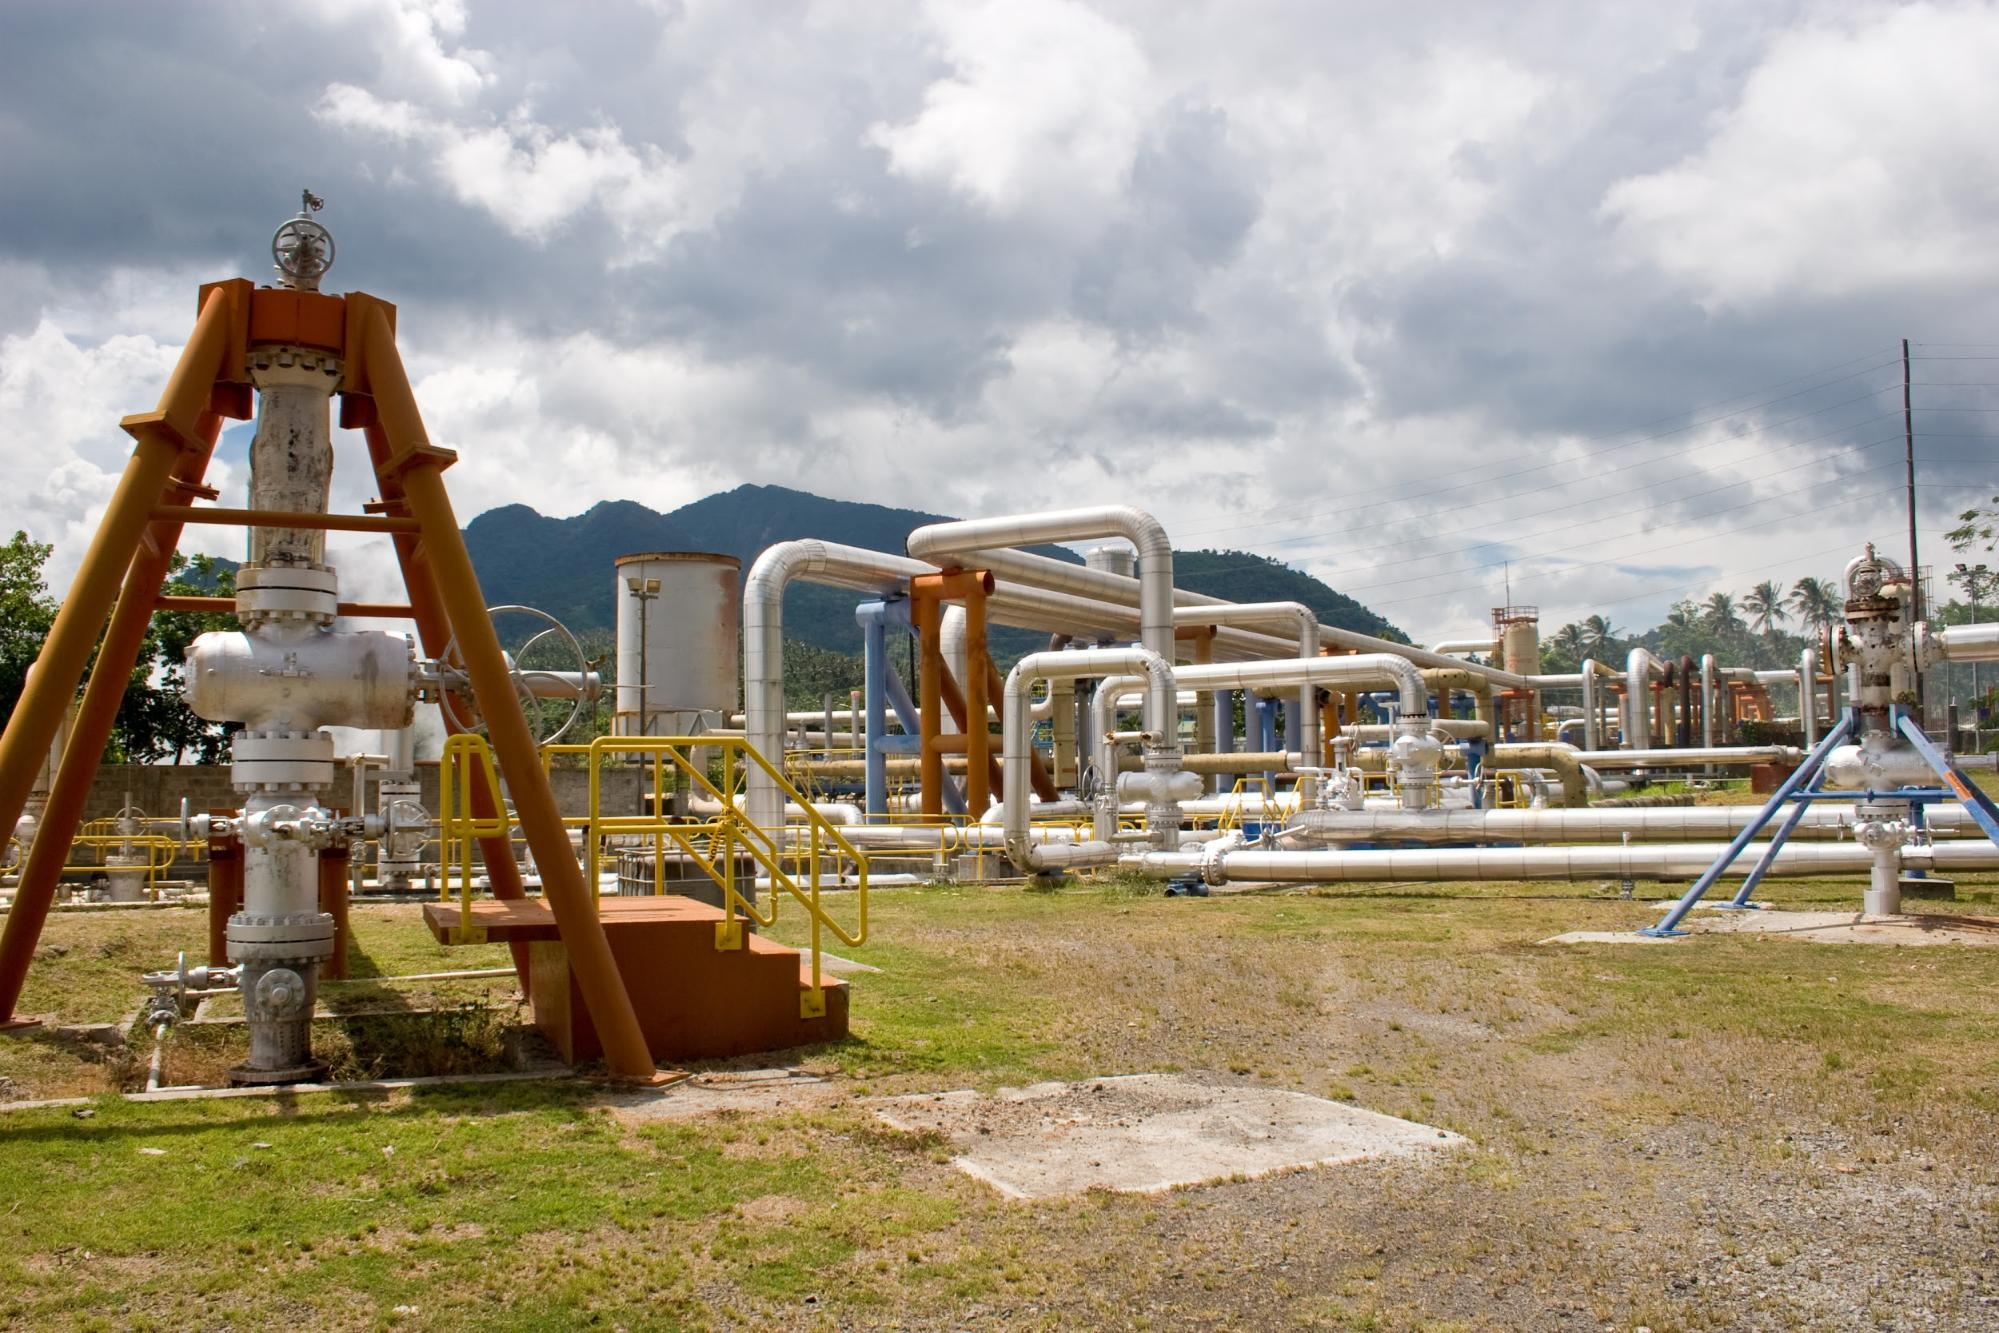 Enhanced geothermal systems or engineered geothermal systems (EGS)